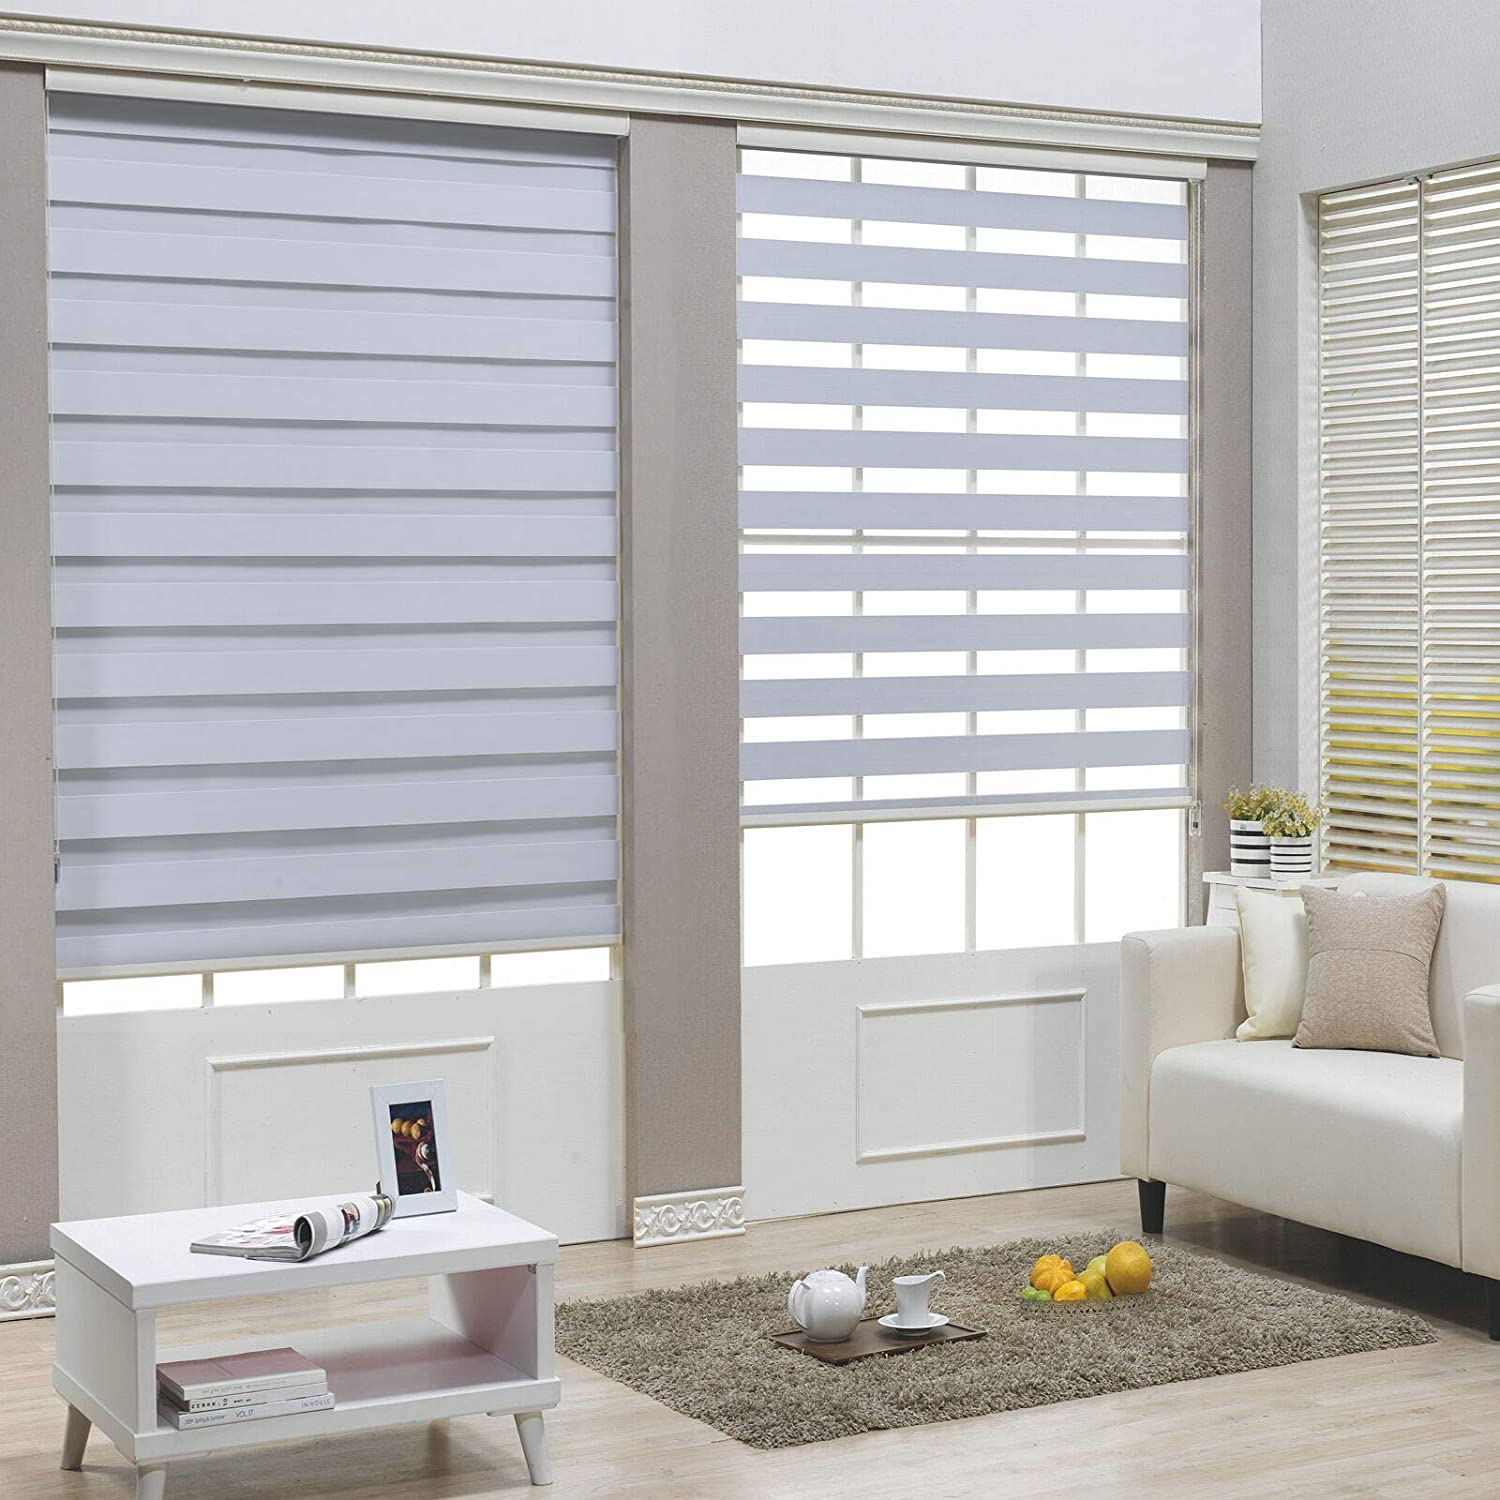 """HTTMT- Zebra Roller Blinds [(W)71"""" x (H)72""""] White, Cordless, Dual Layer Shades, Sheer or Privacy Light Control, Day and Night Window Drapes, Easy to Install, Striped Dove [P/N: ET-ZB-W-71]"""